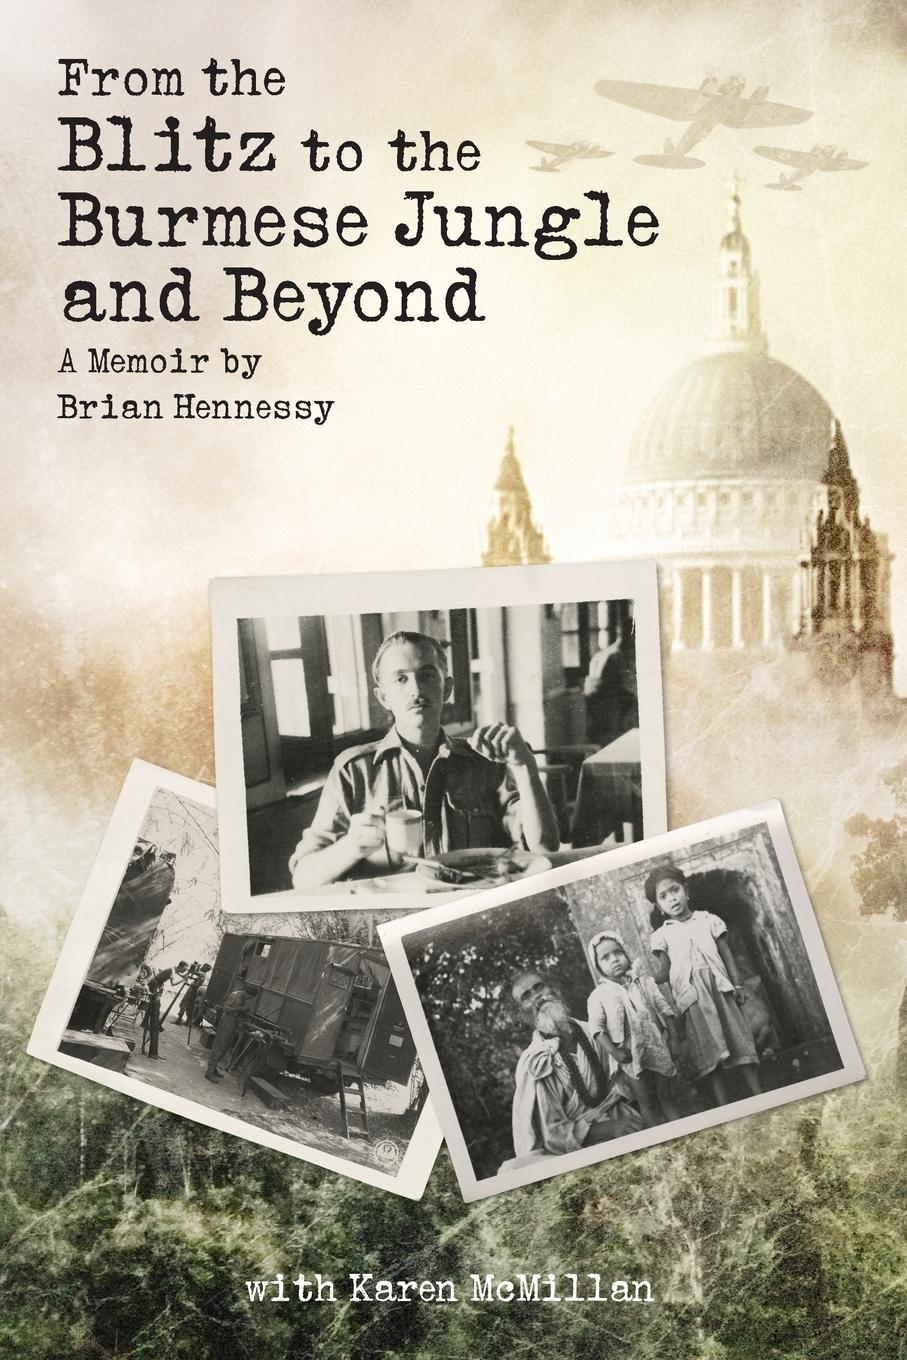 лучшая цена Brian Hennessy, Karen McMillan From the Blitz to the Burmese Jungle and Beyond. A World War II memoir by Brian Hennessy